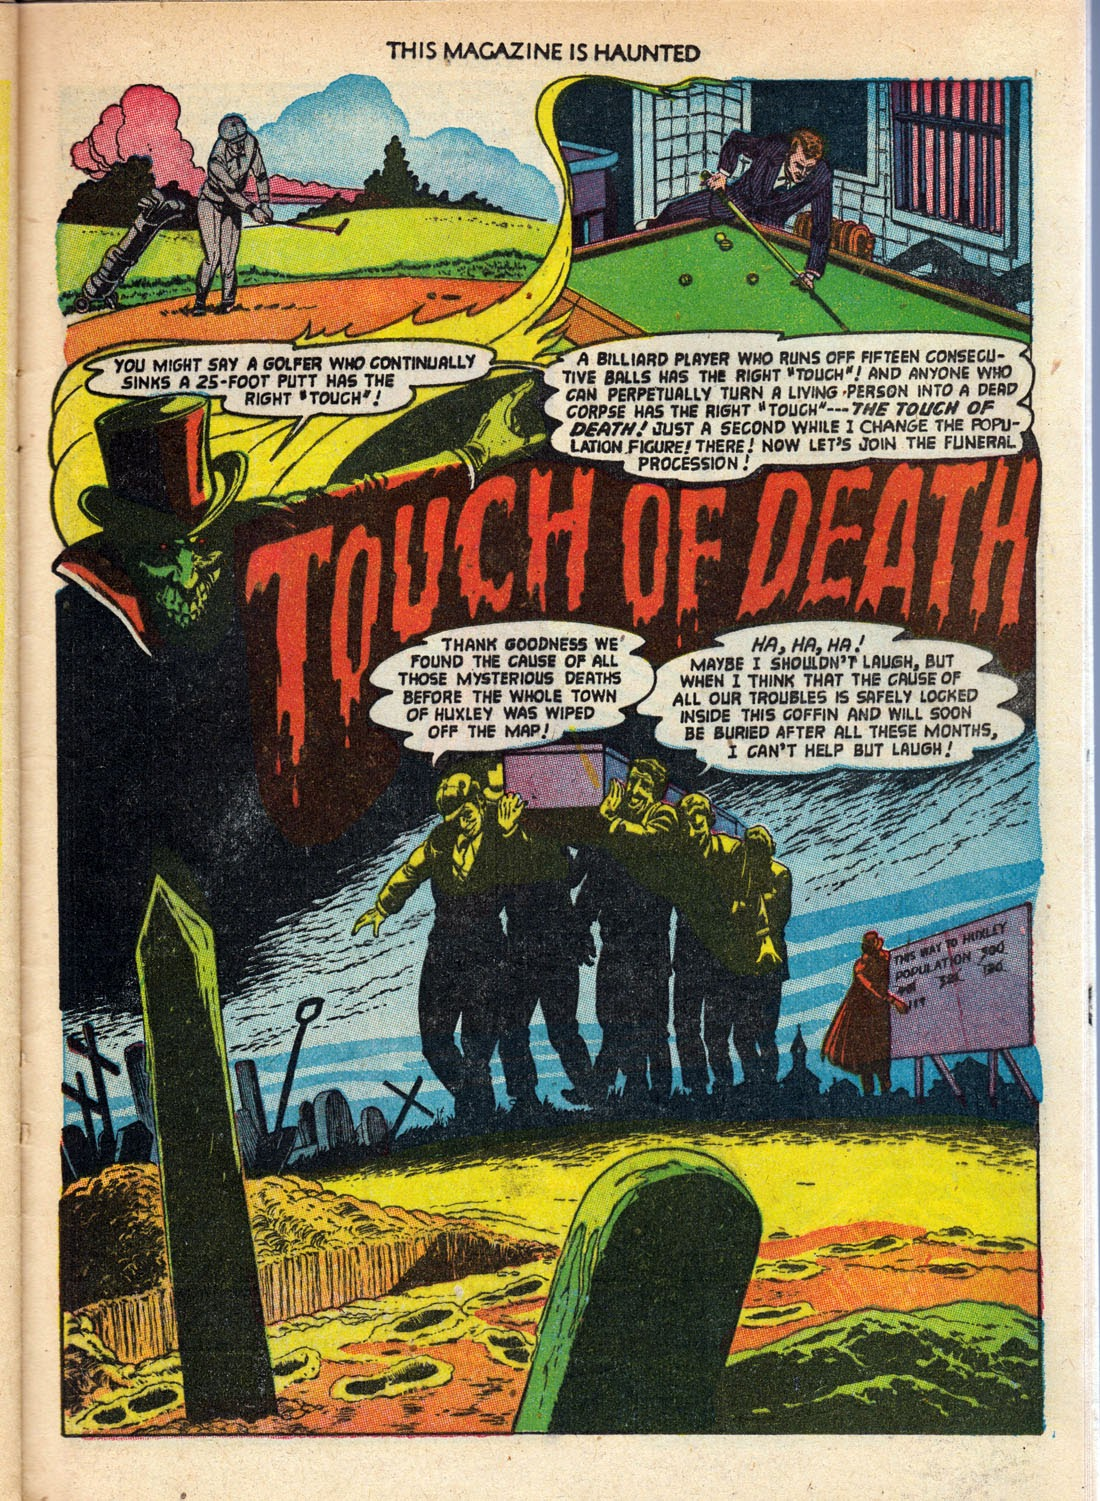 Read online This Magazine Is Haunted comic -  Issue #11 - 25